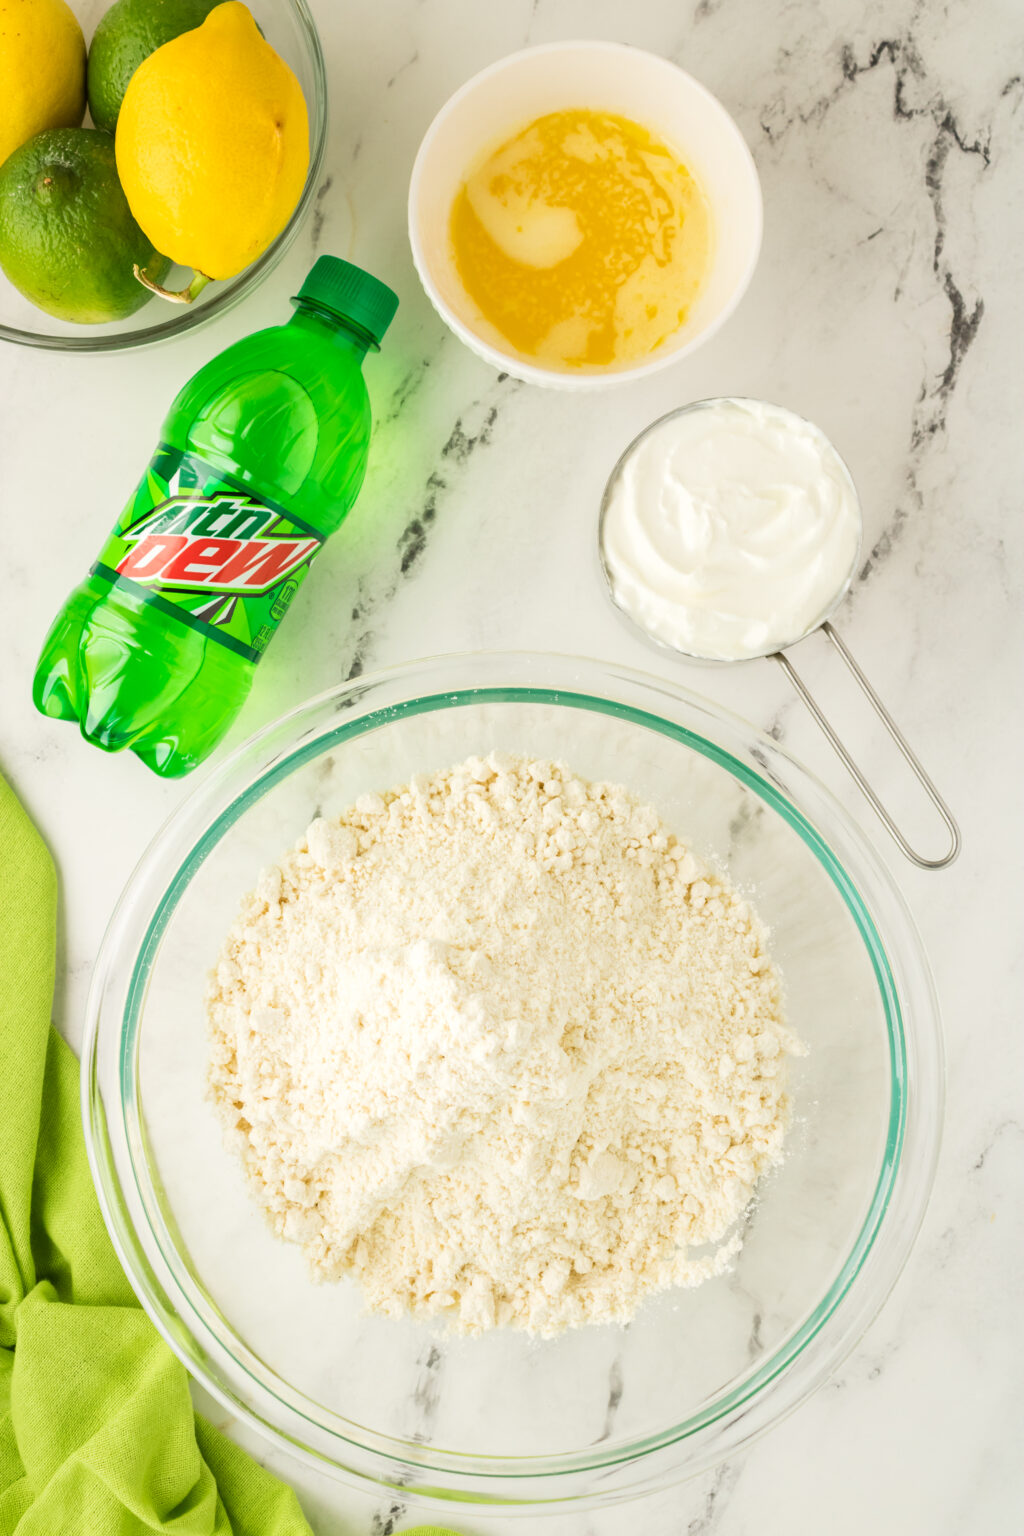 mountain dew biscuit ingredients on a table